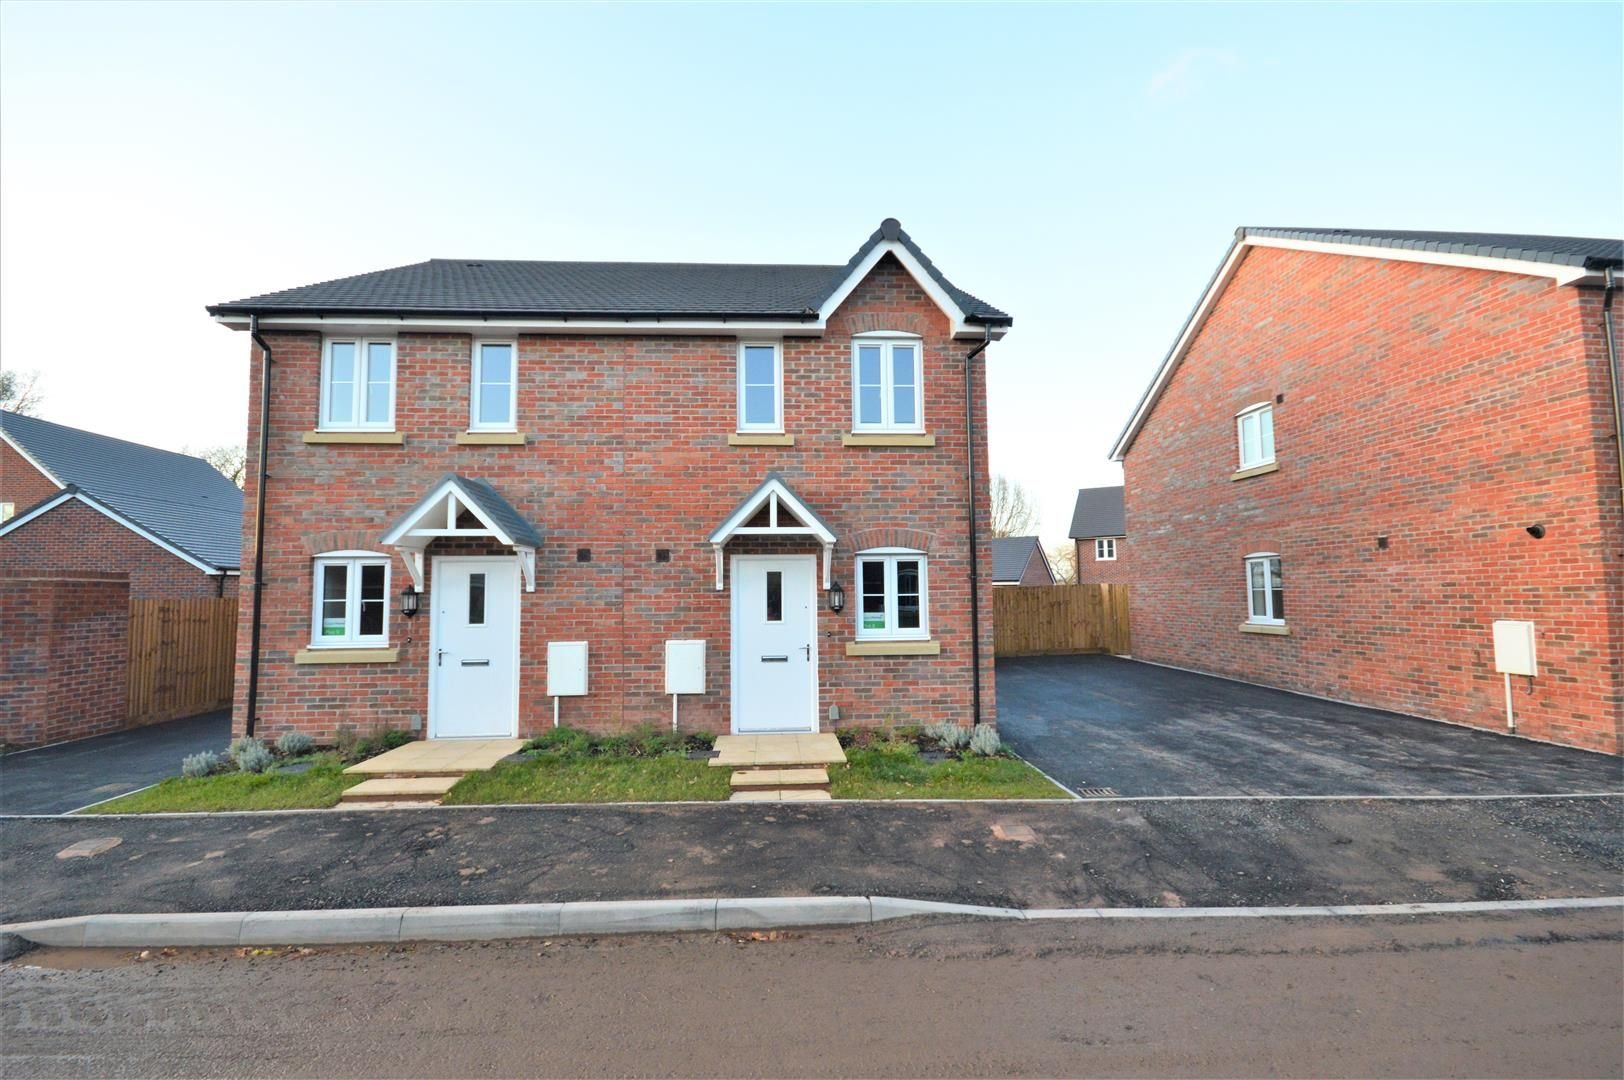 2 bed semi-detached for sale in Kingstone, HR2